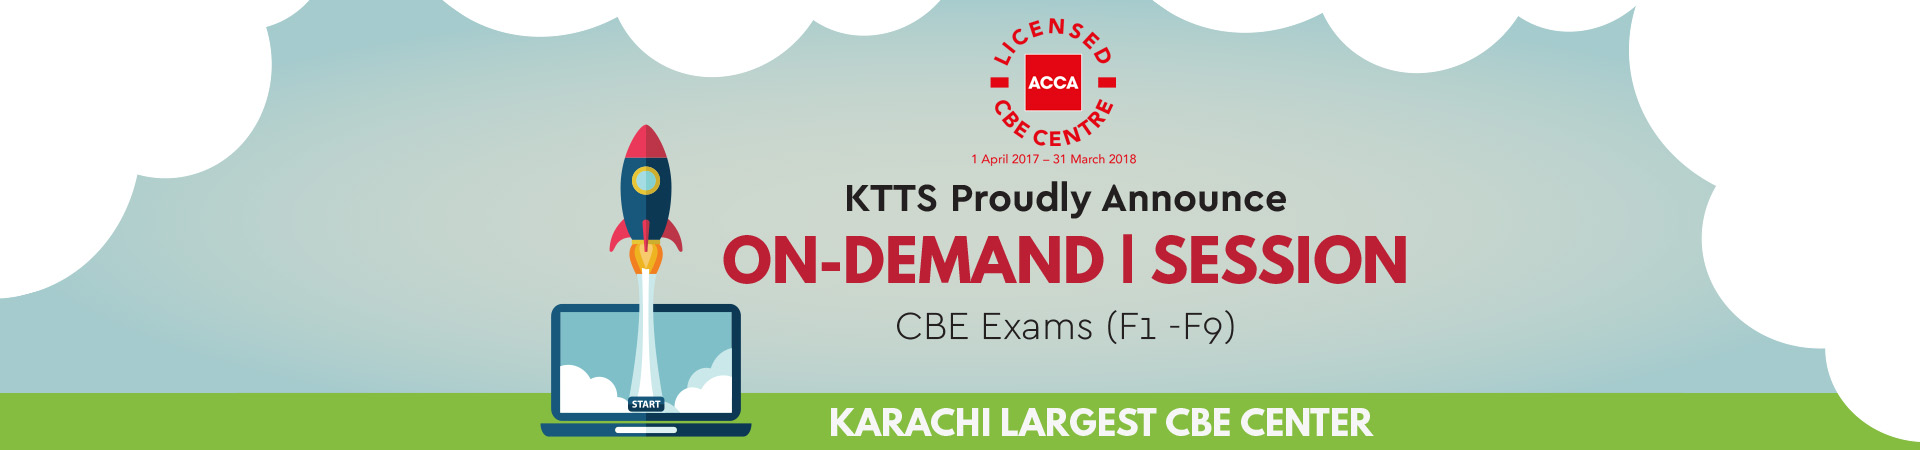 Online exams in karchi karachi technologies testing services 3 easy steps to taking an exam at the exam centre xflitez Images